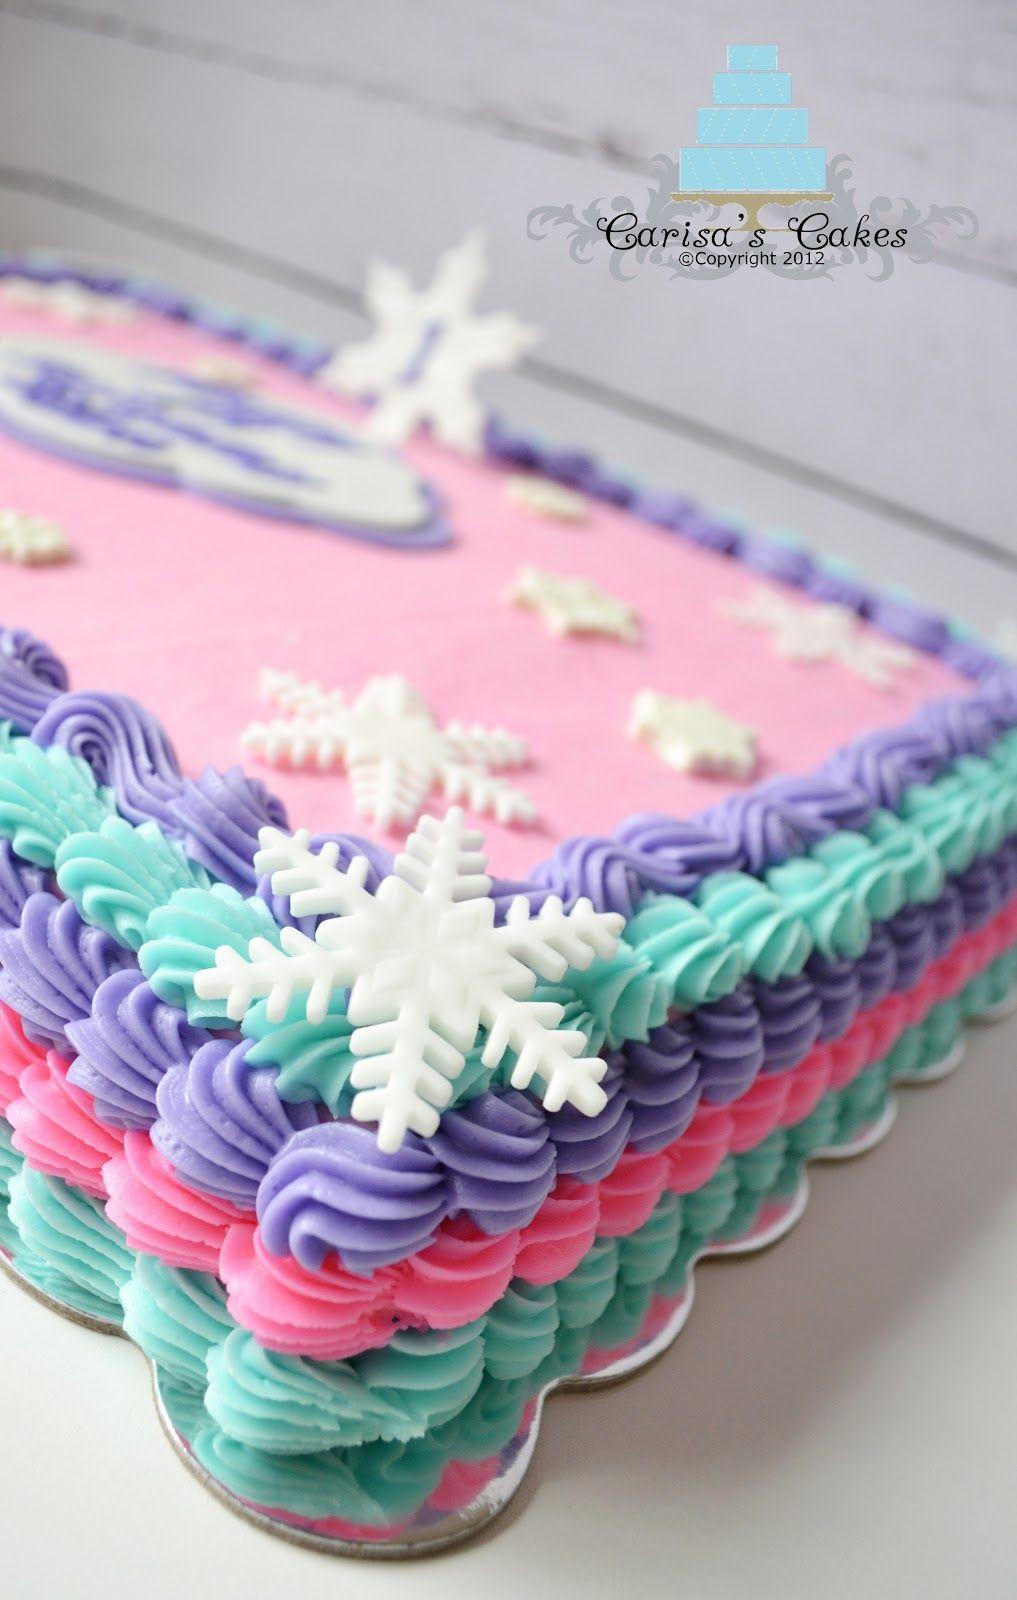 Frozen inspired cake for a little girl and her dad that share the